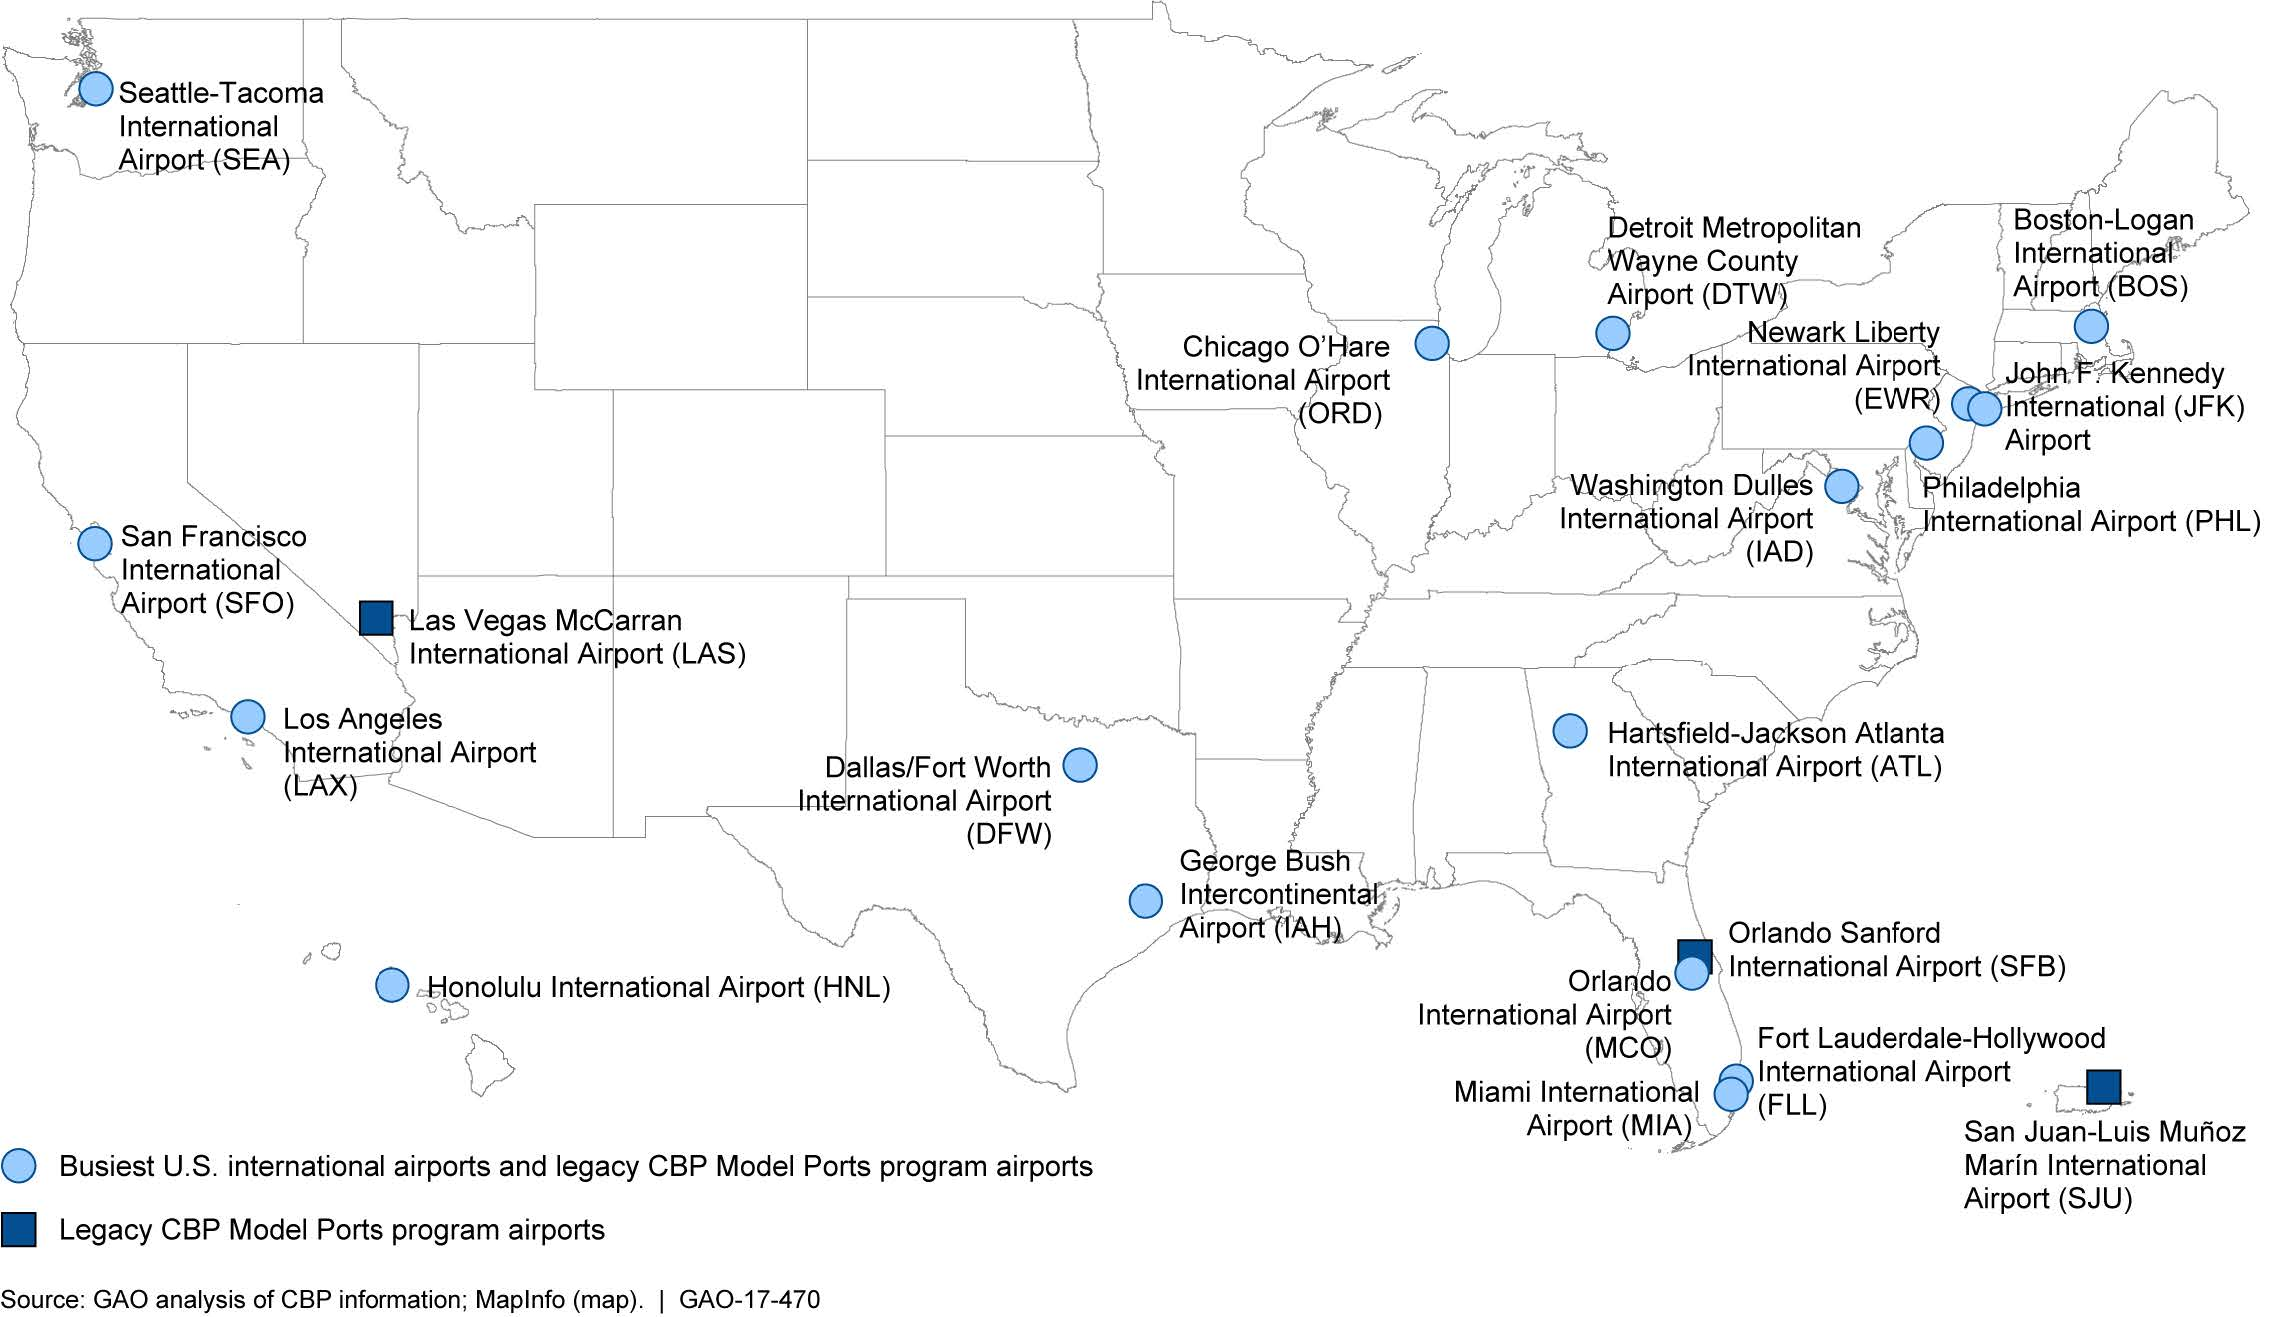 united states international airports map File:Figure 2  Map of the 17 Busiest U.S. International Airports